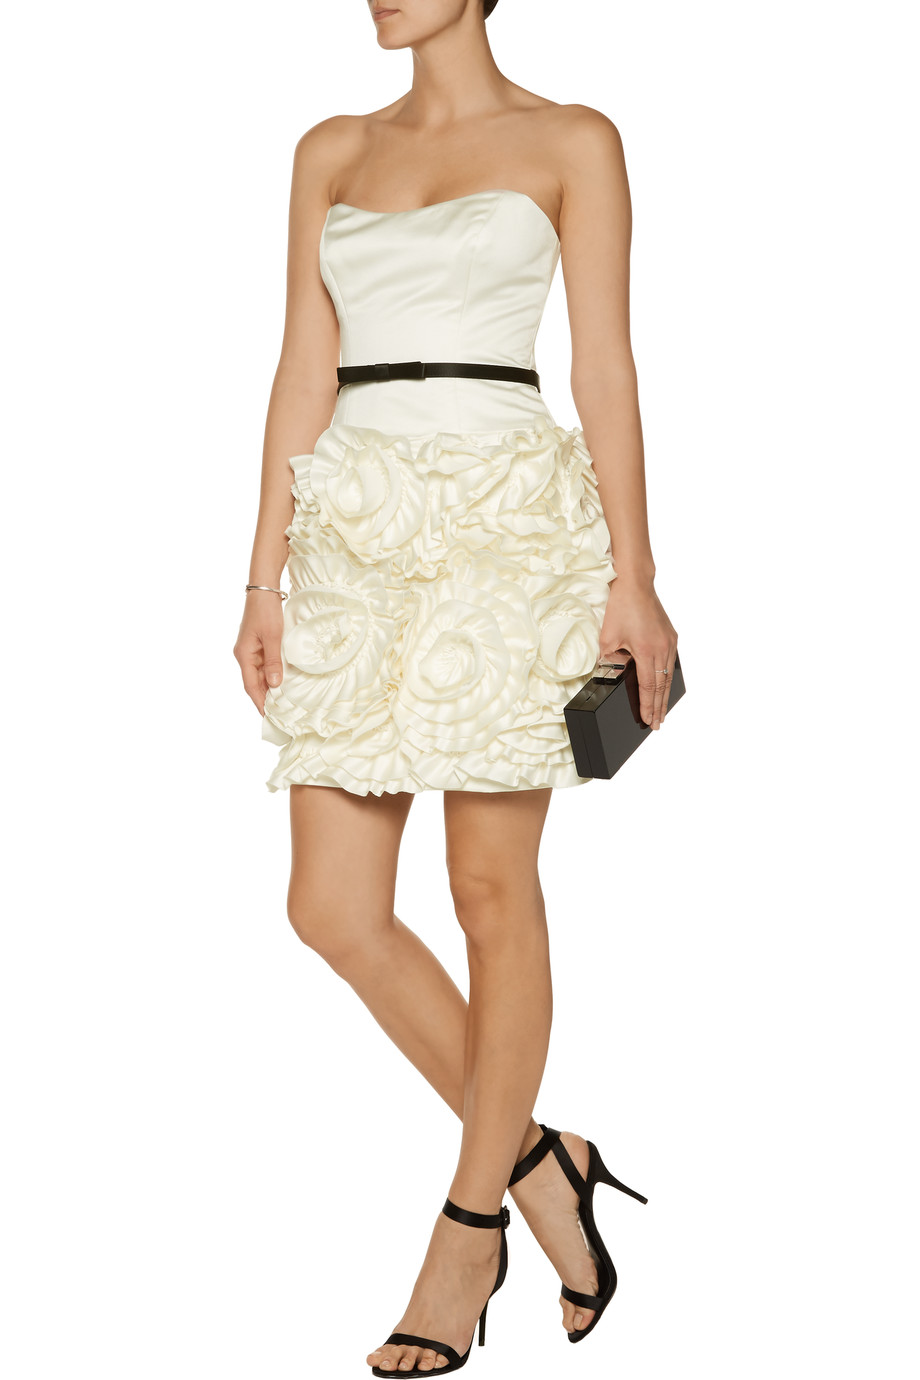 Milly rosette mini dress, $218